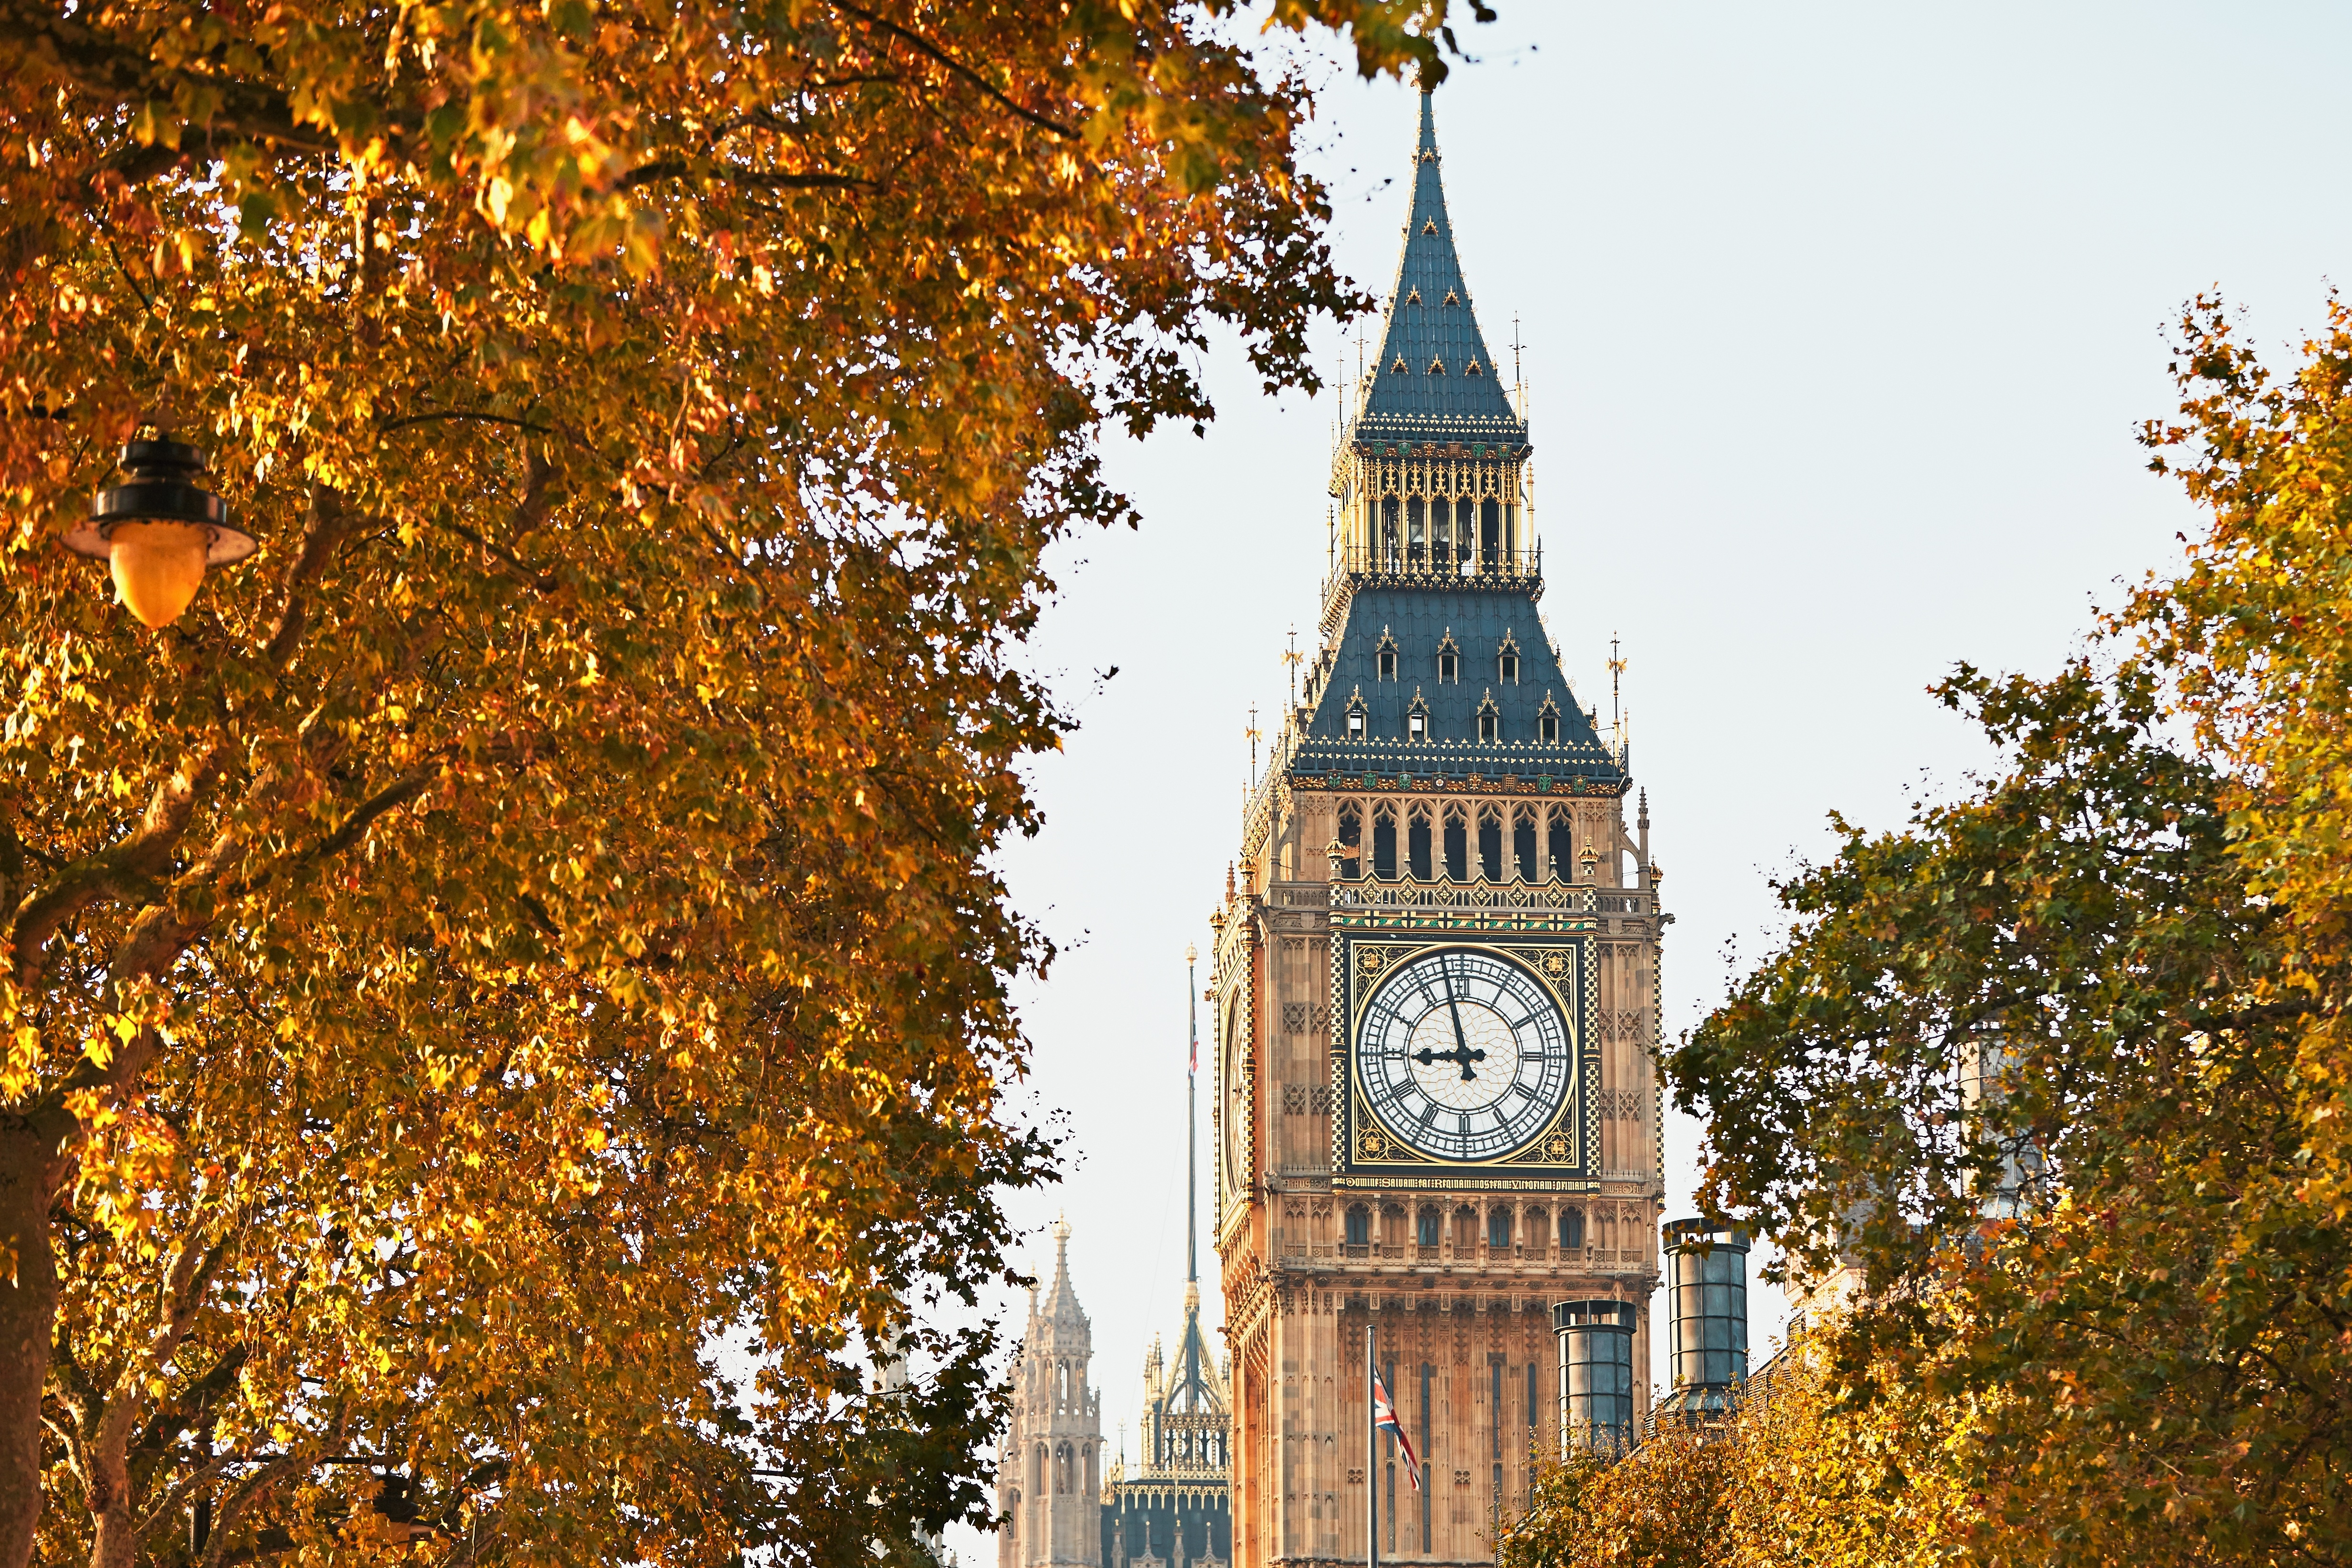 Credit Cards in England: Is London Stalling?